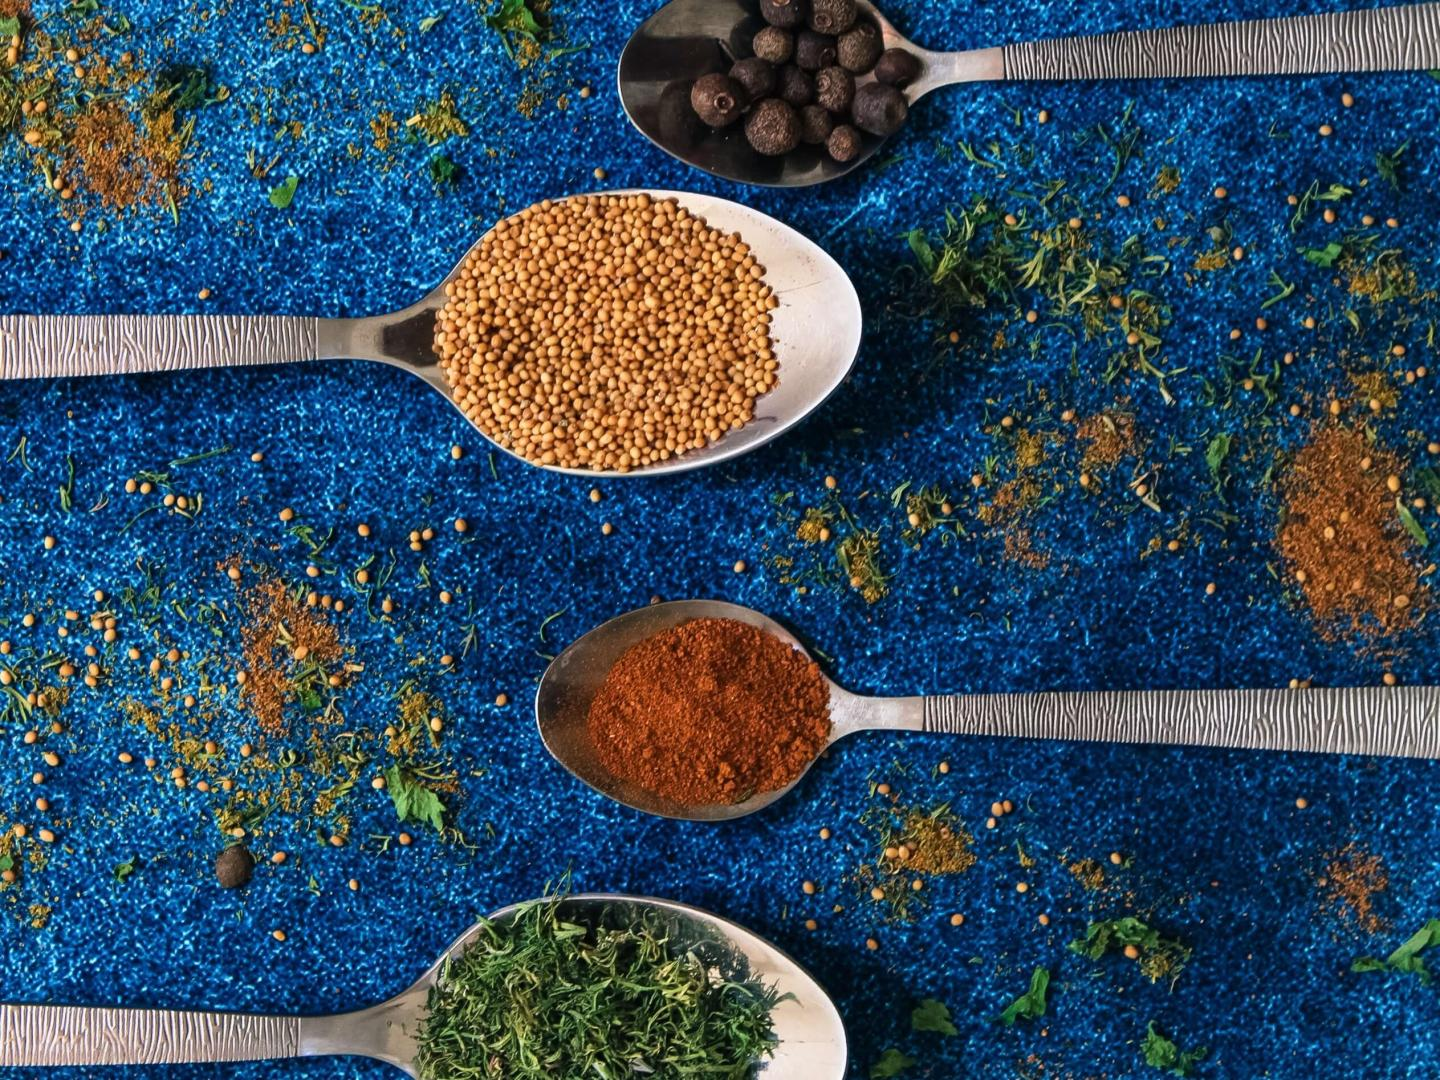 Image of 6 spoons all with different spices